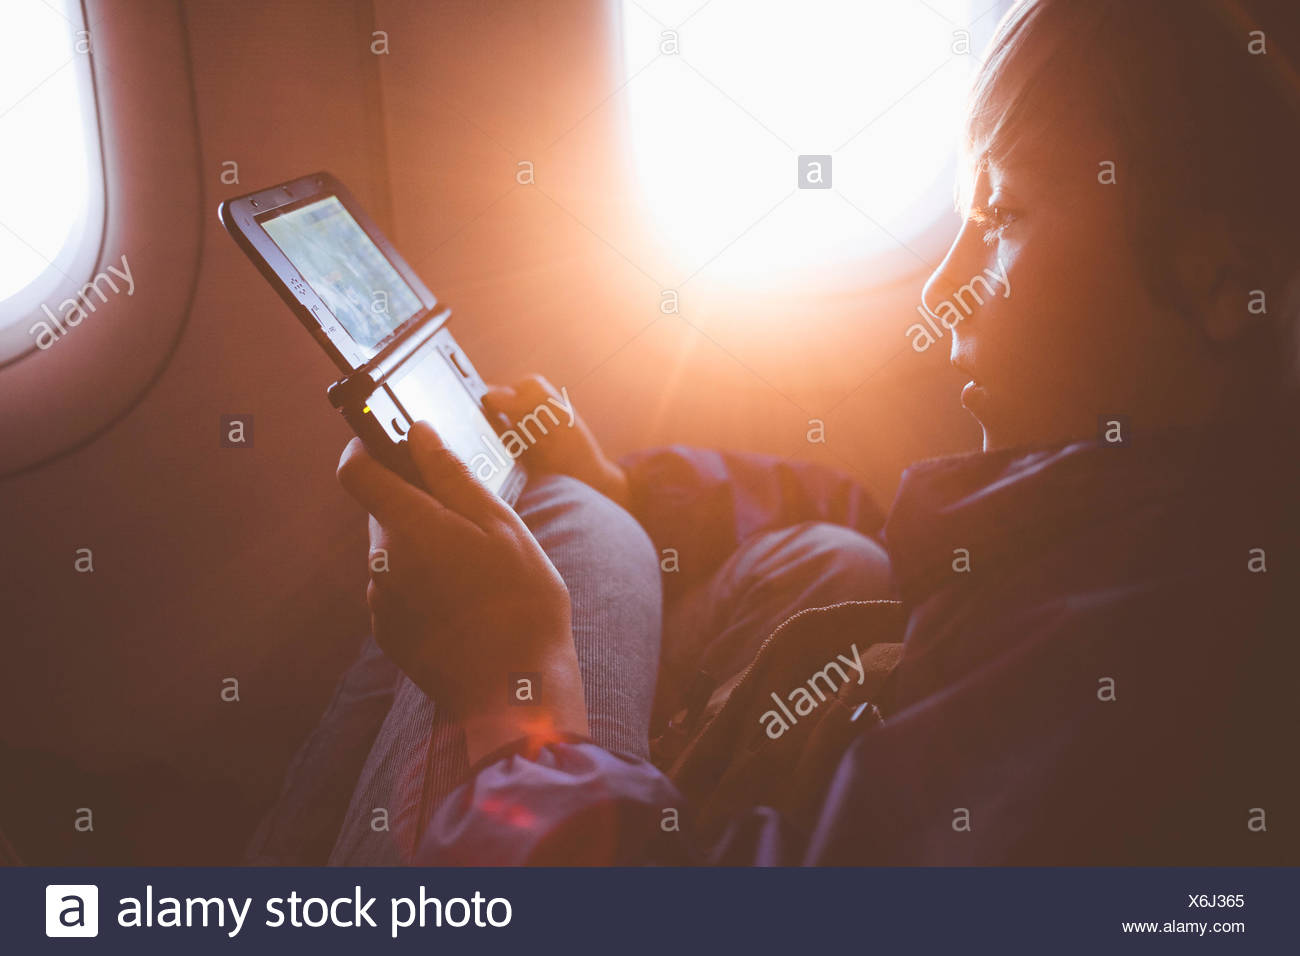 Boy playing with handheld video game - Stock Image